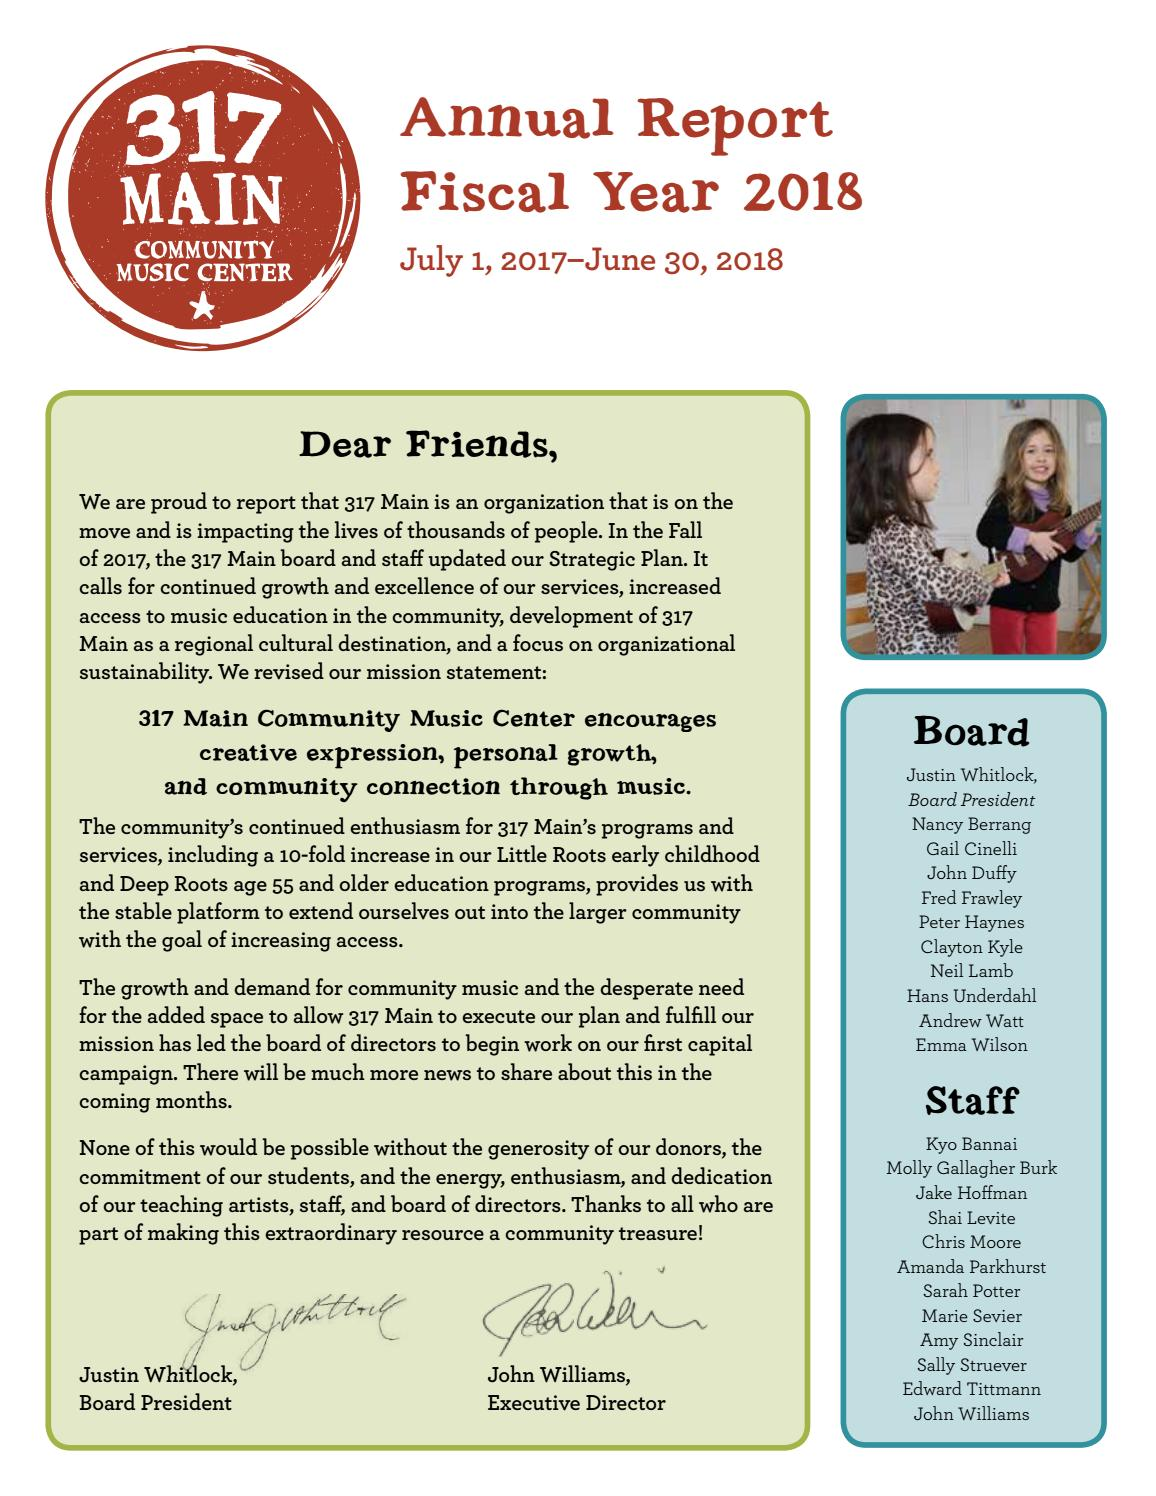 317 Main Annual Report Fiscal Year 2018 by 317main - issuu